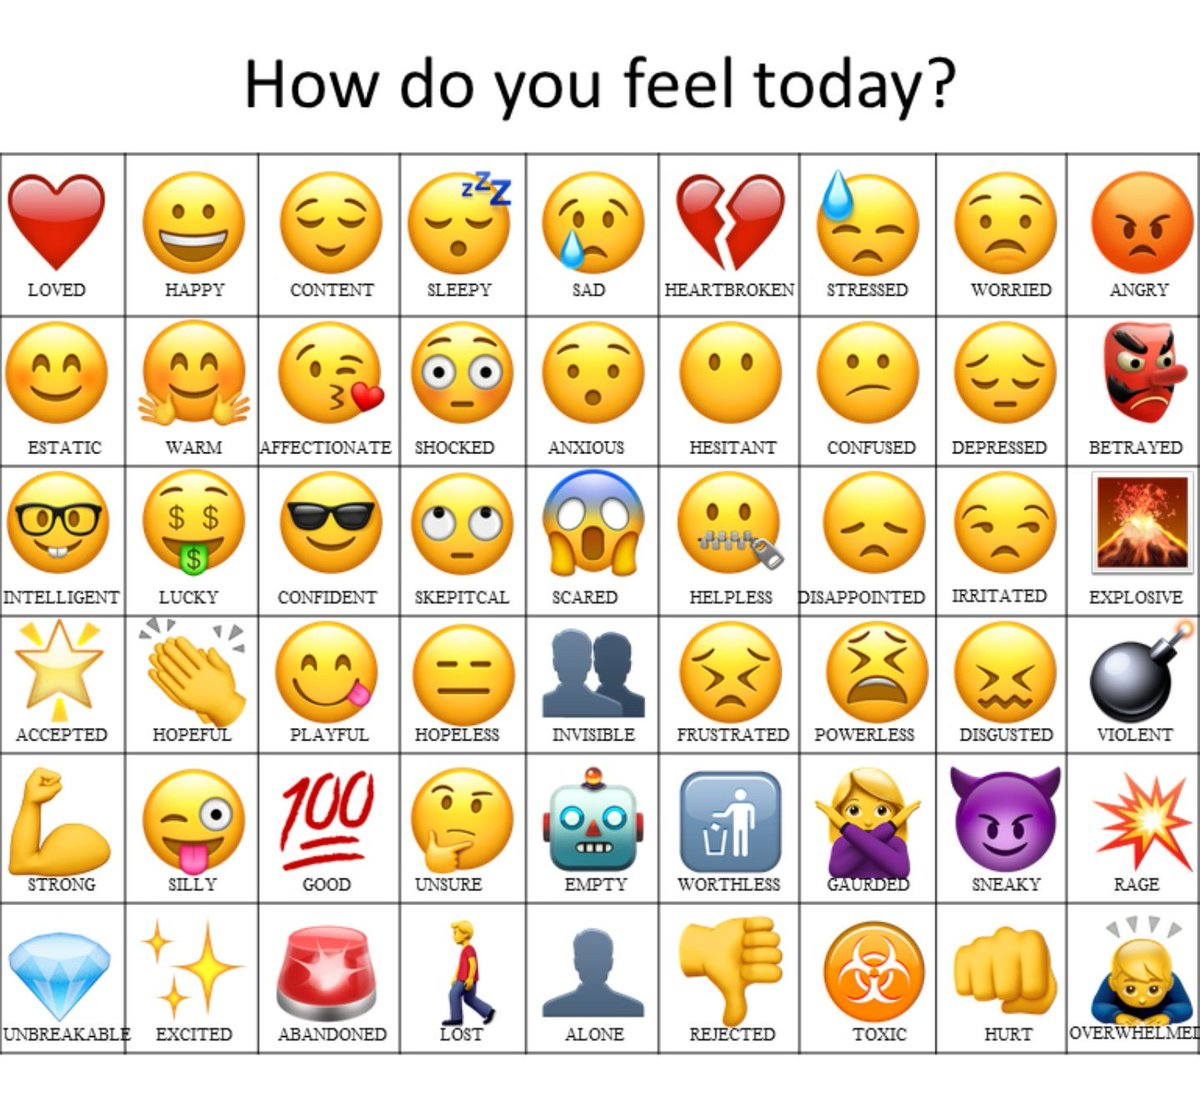 RT @InglaLondon: Happy #WorldEmojiDay! Which #emoji #describes you today? ☀️⛱🍦🌸🎷🎡🎬🎪🍹🛍🍽🥂💃  #learn #English #London https://t.co/erK5pP8nnV